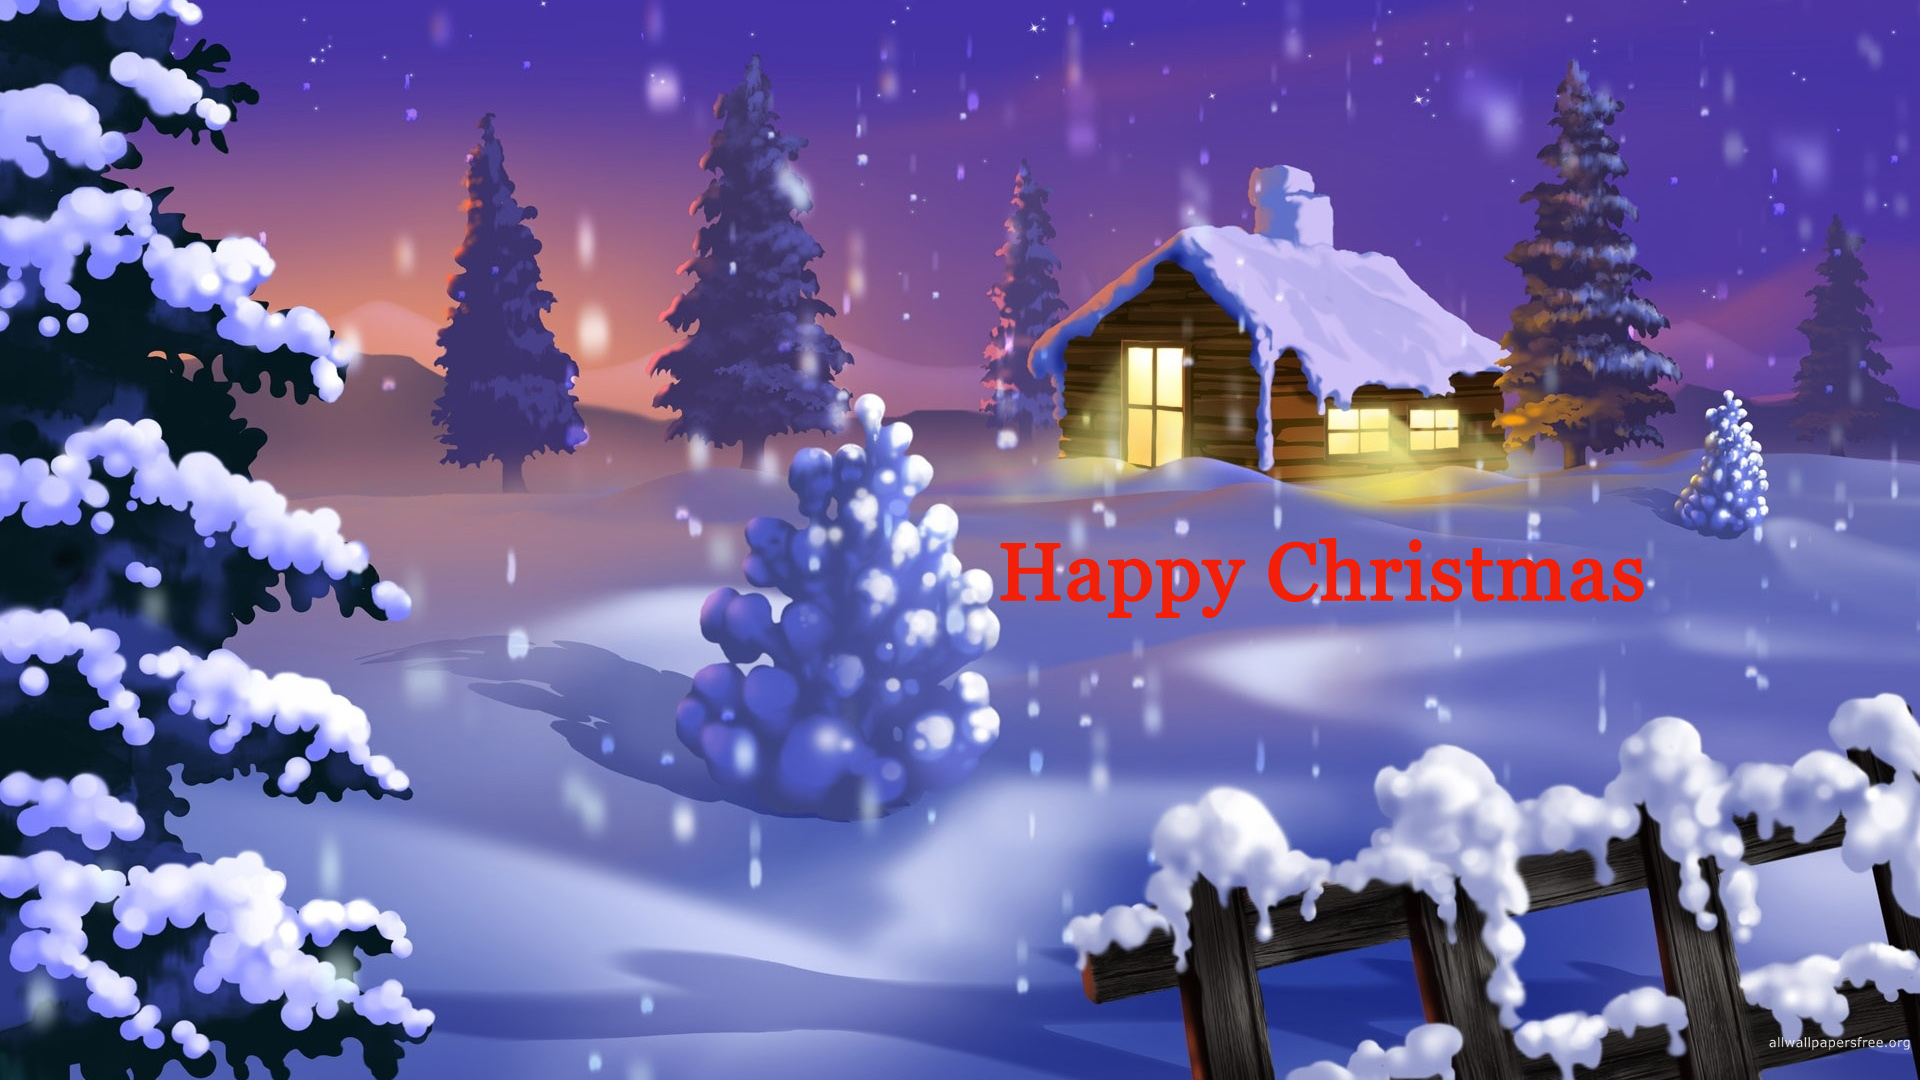 Happy Christmas HD wallpaper for download in laptop and desktop